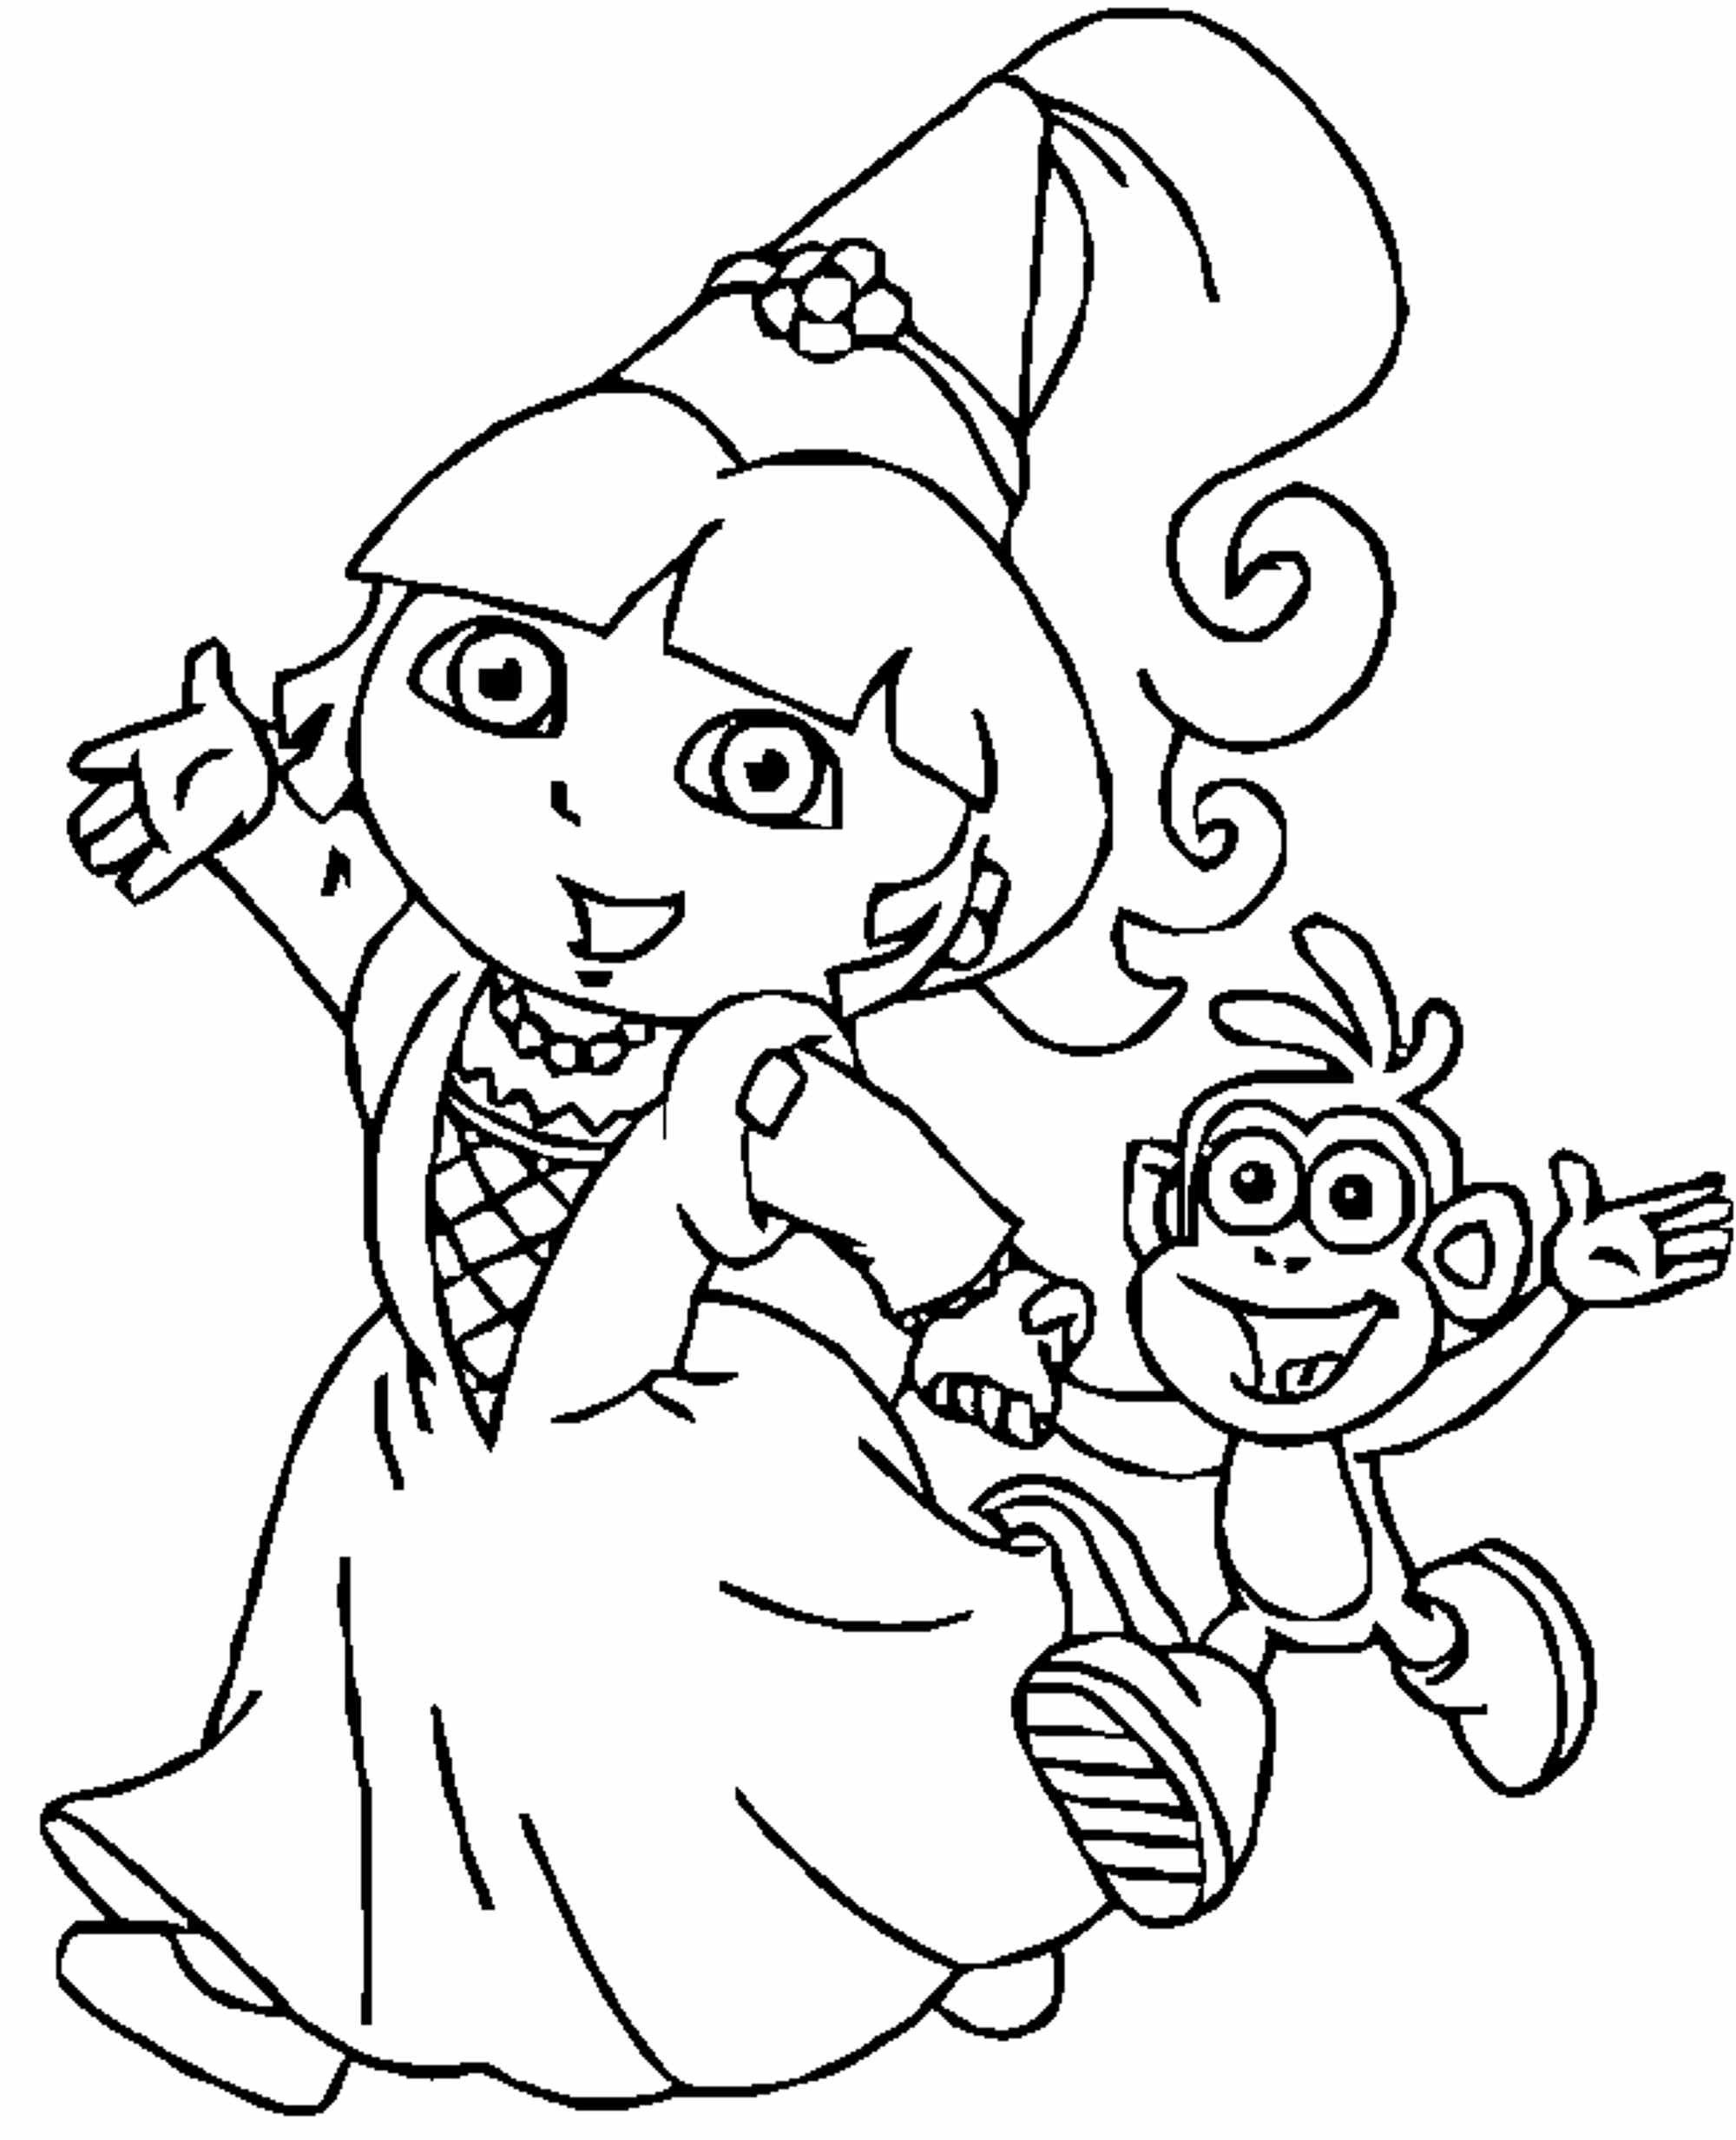 Princess Coloring Pages Momjunction From The Thousands Of Pictures On The Web Concerni Princess Coloring Pages Halloween Coloring Pages Minion Coloring Pages